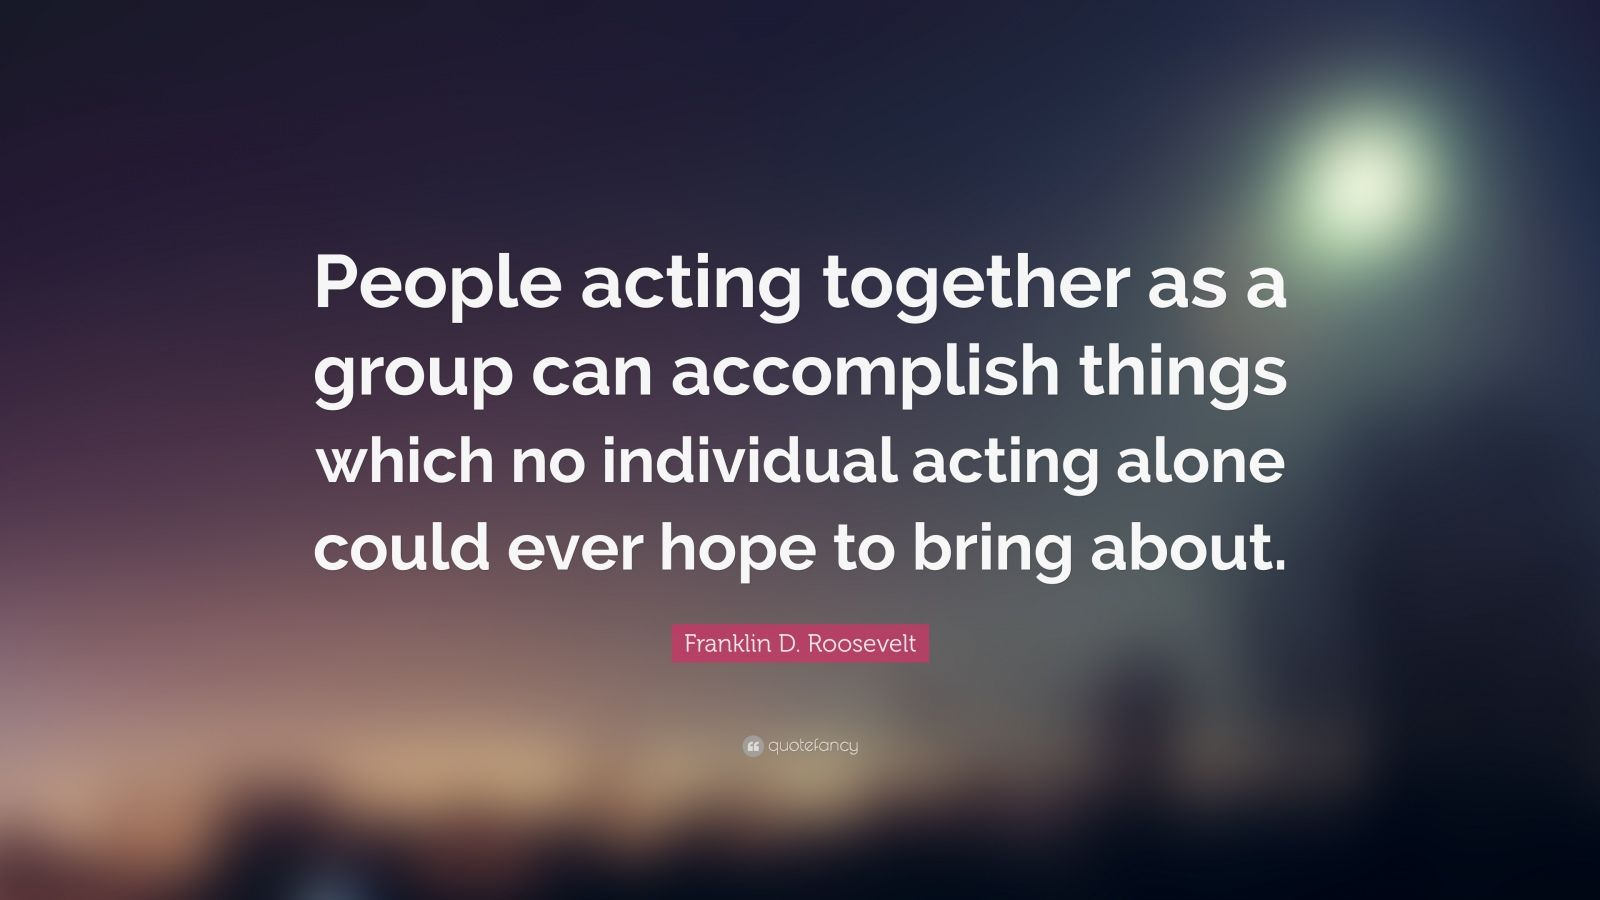 Sarcastic Quotes Wallpaper Franklin D Roosevelt Quote People Acting Together As A